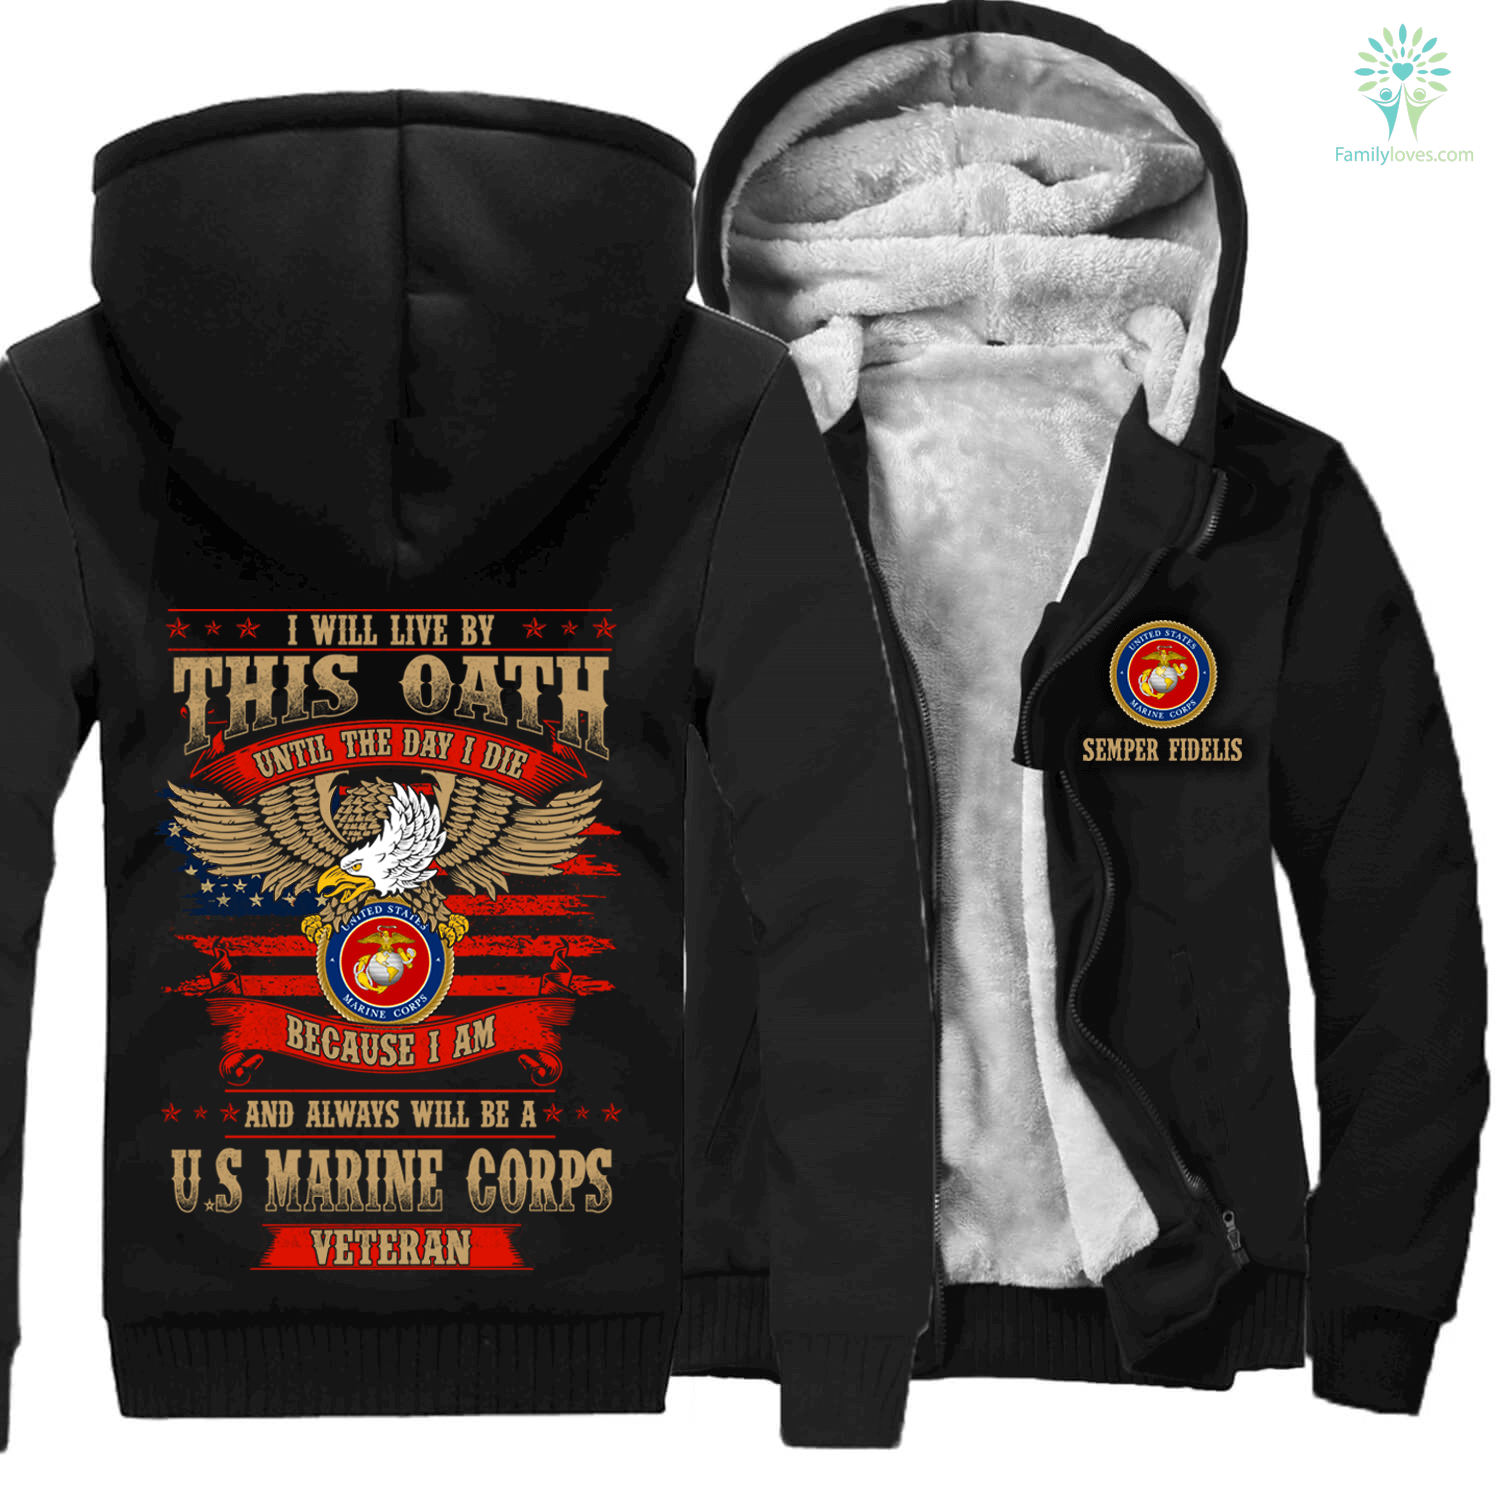 i-will-live_175d3a8c-cabc-6ba8-5a1e-cc67fe0575a8 I will live by this oath until the day I die because I am and always will be a U.S marine corps veteran hoodie  %tag